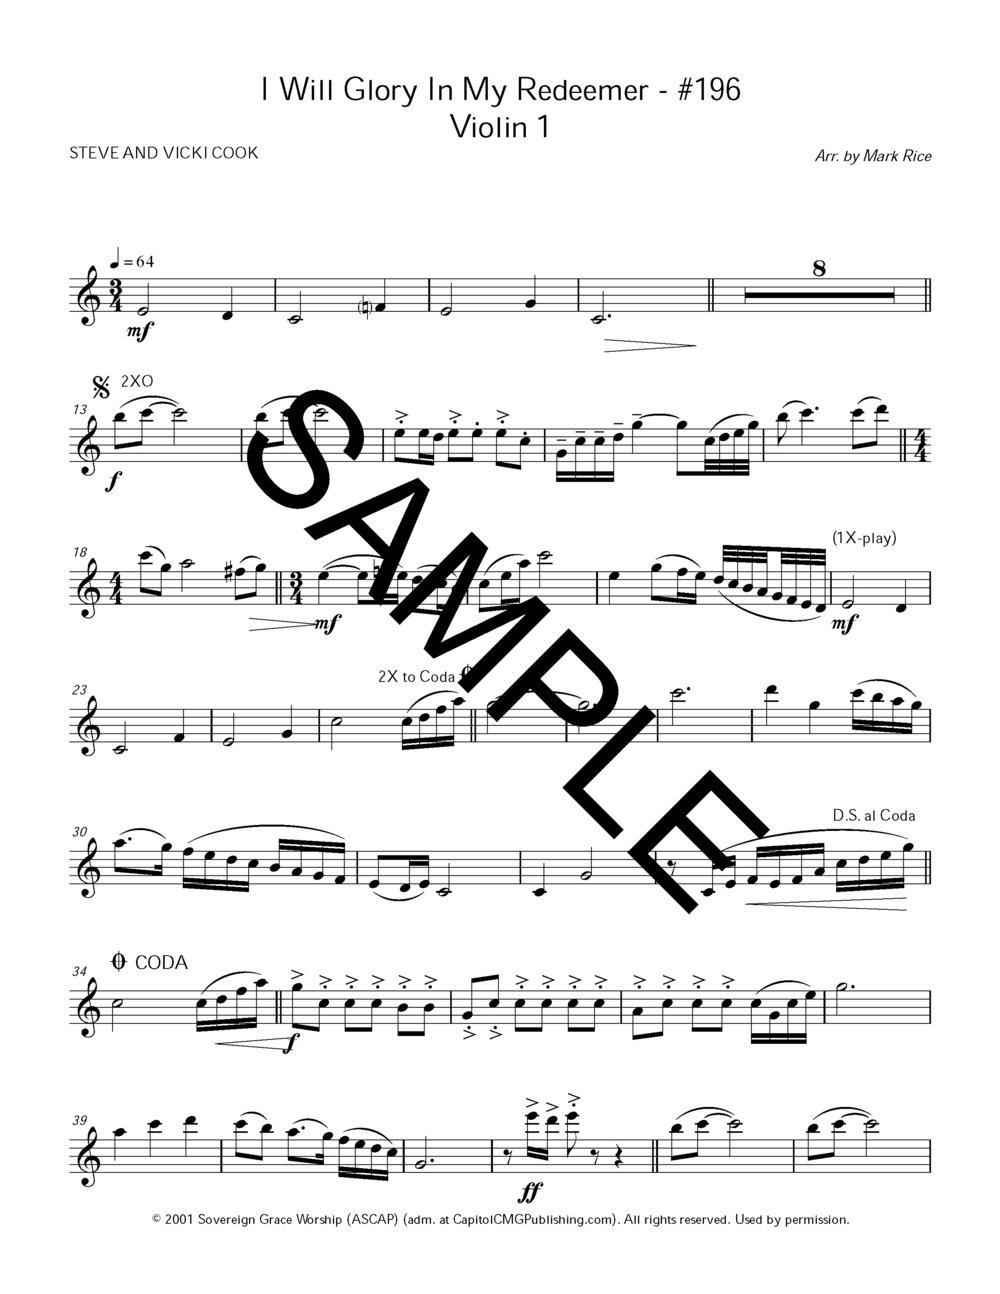 Sample I Will Glory in My Redeemer #196 Strngs Ob Piano Chrd Chrt Orgn M Rice arr_Page_29.jpg